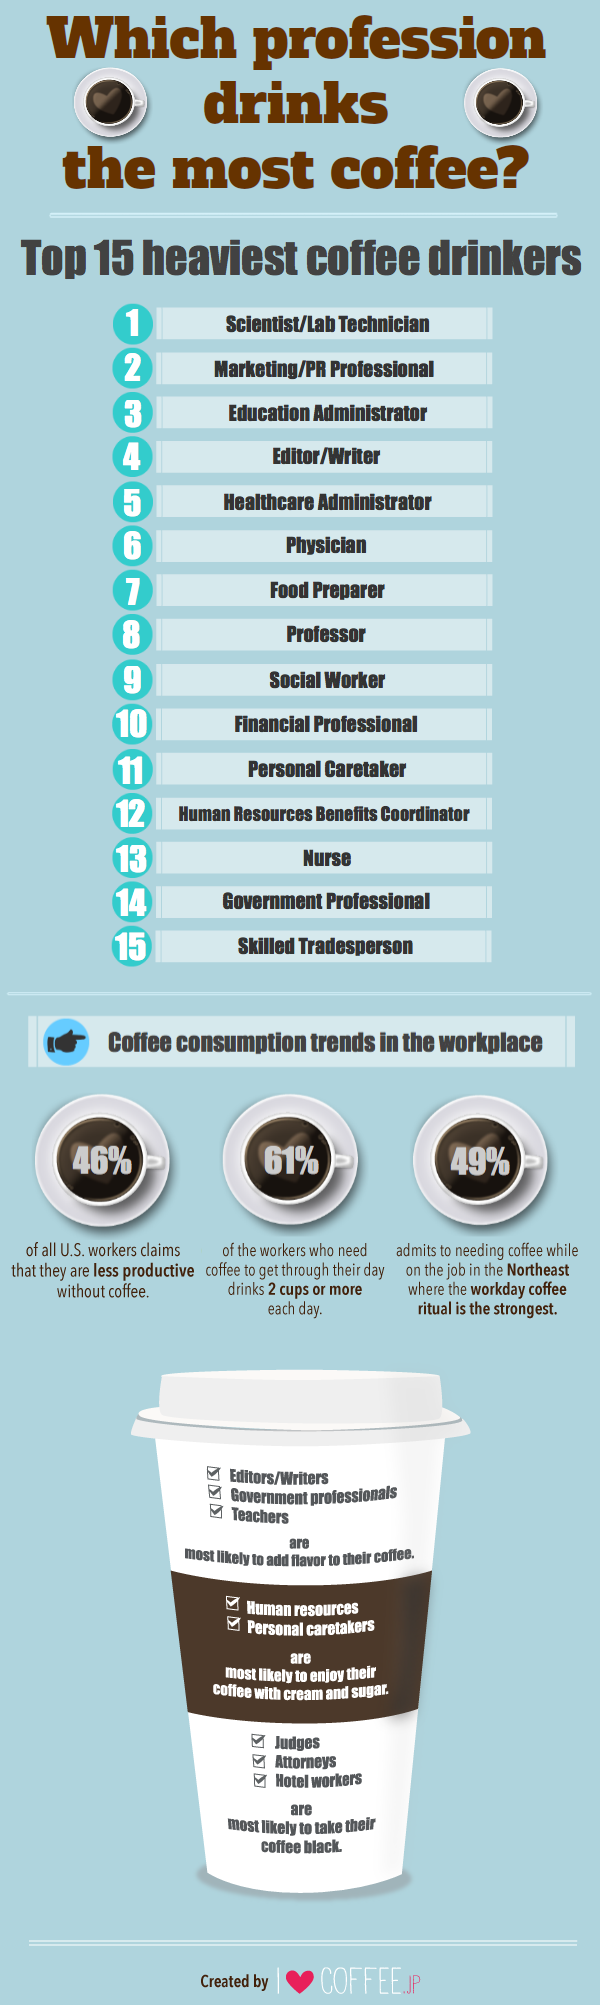 I Love Coffee infographic - which pros drink the most coffee